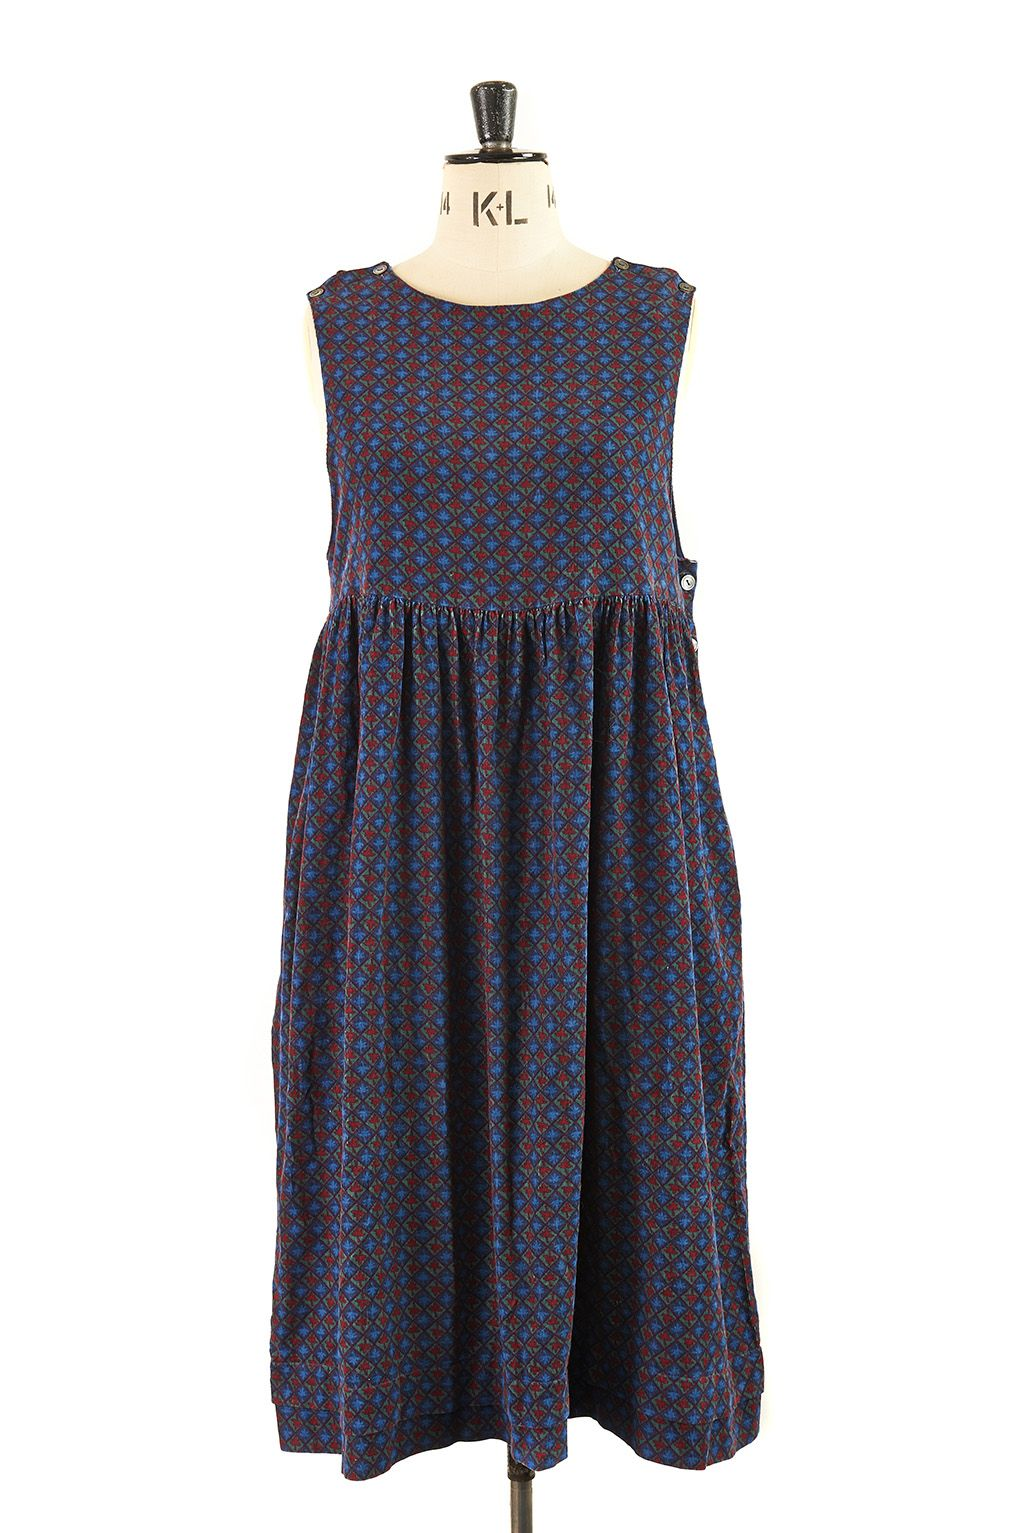 A pinafore dress from Laura Ashley in beautifully soft needlecord ...